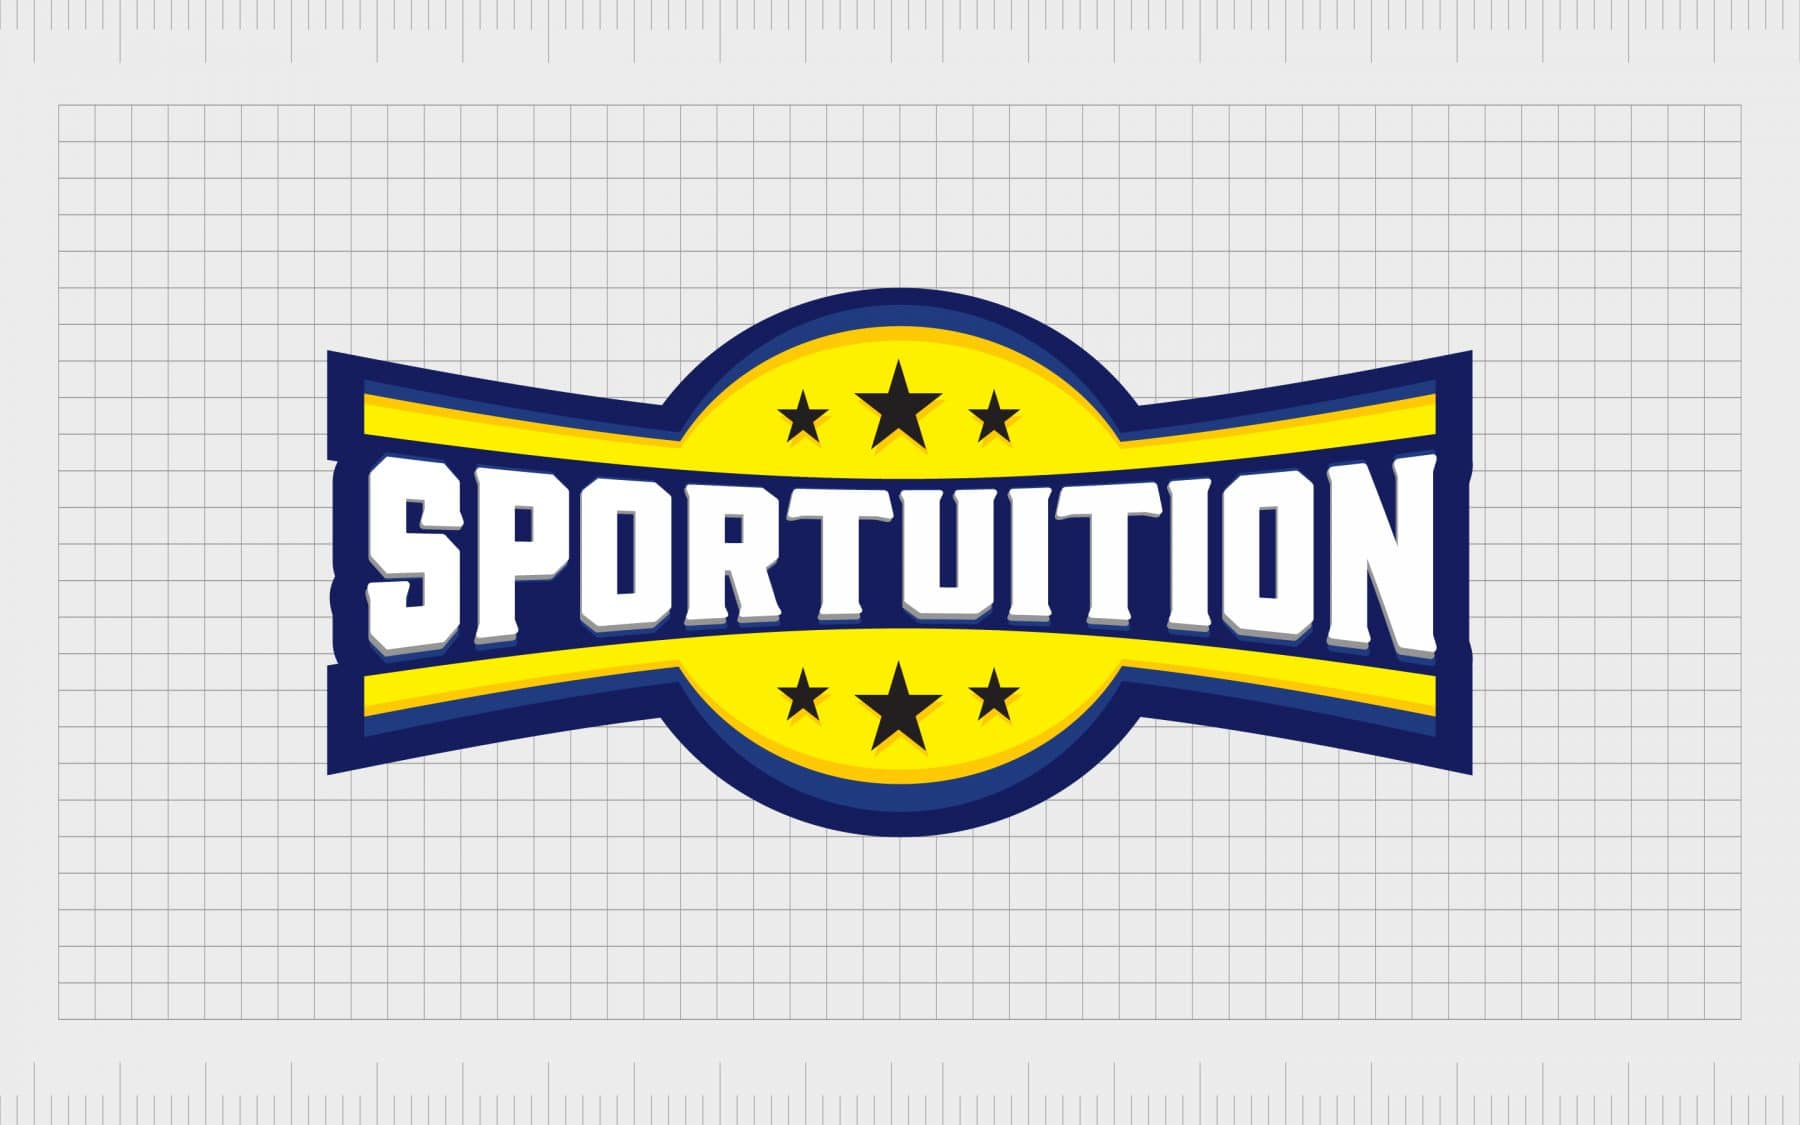 Sportuition